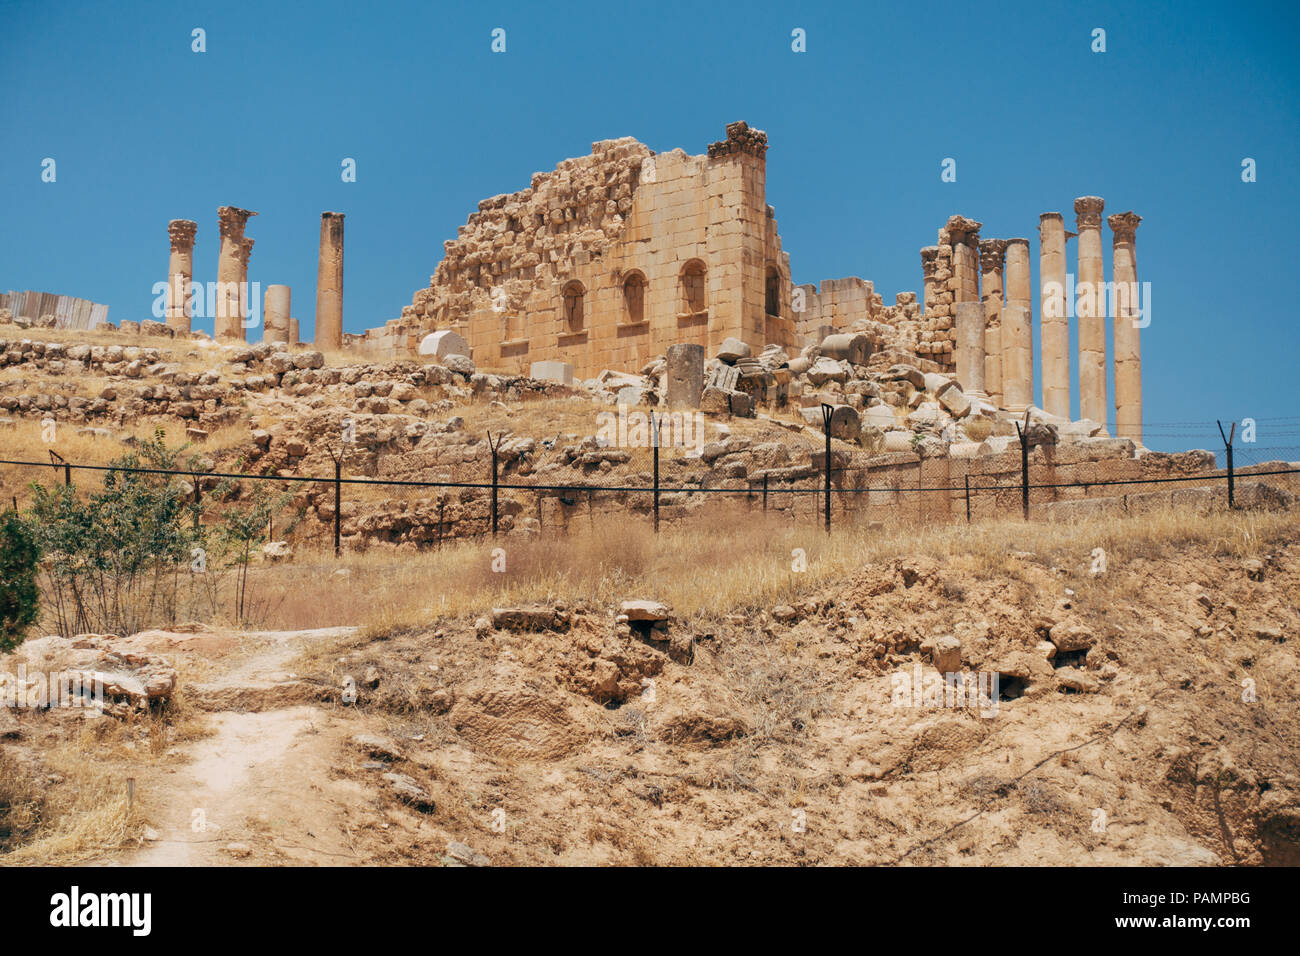 The ruined stones, concrete slabs and pillars in the ancient Mediterranean city of Jerash, Jordan Stock Photo